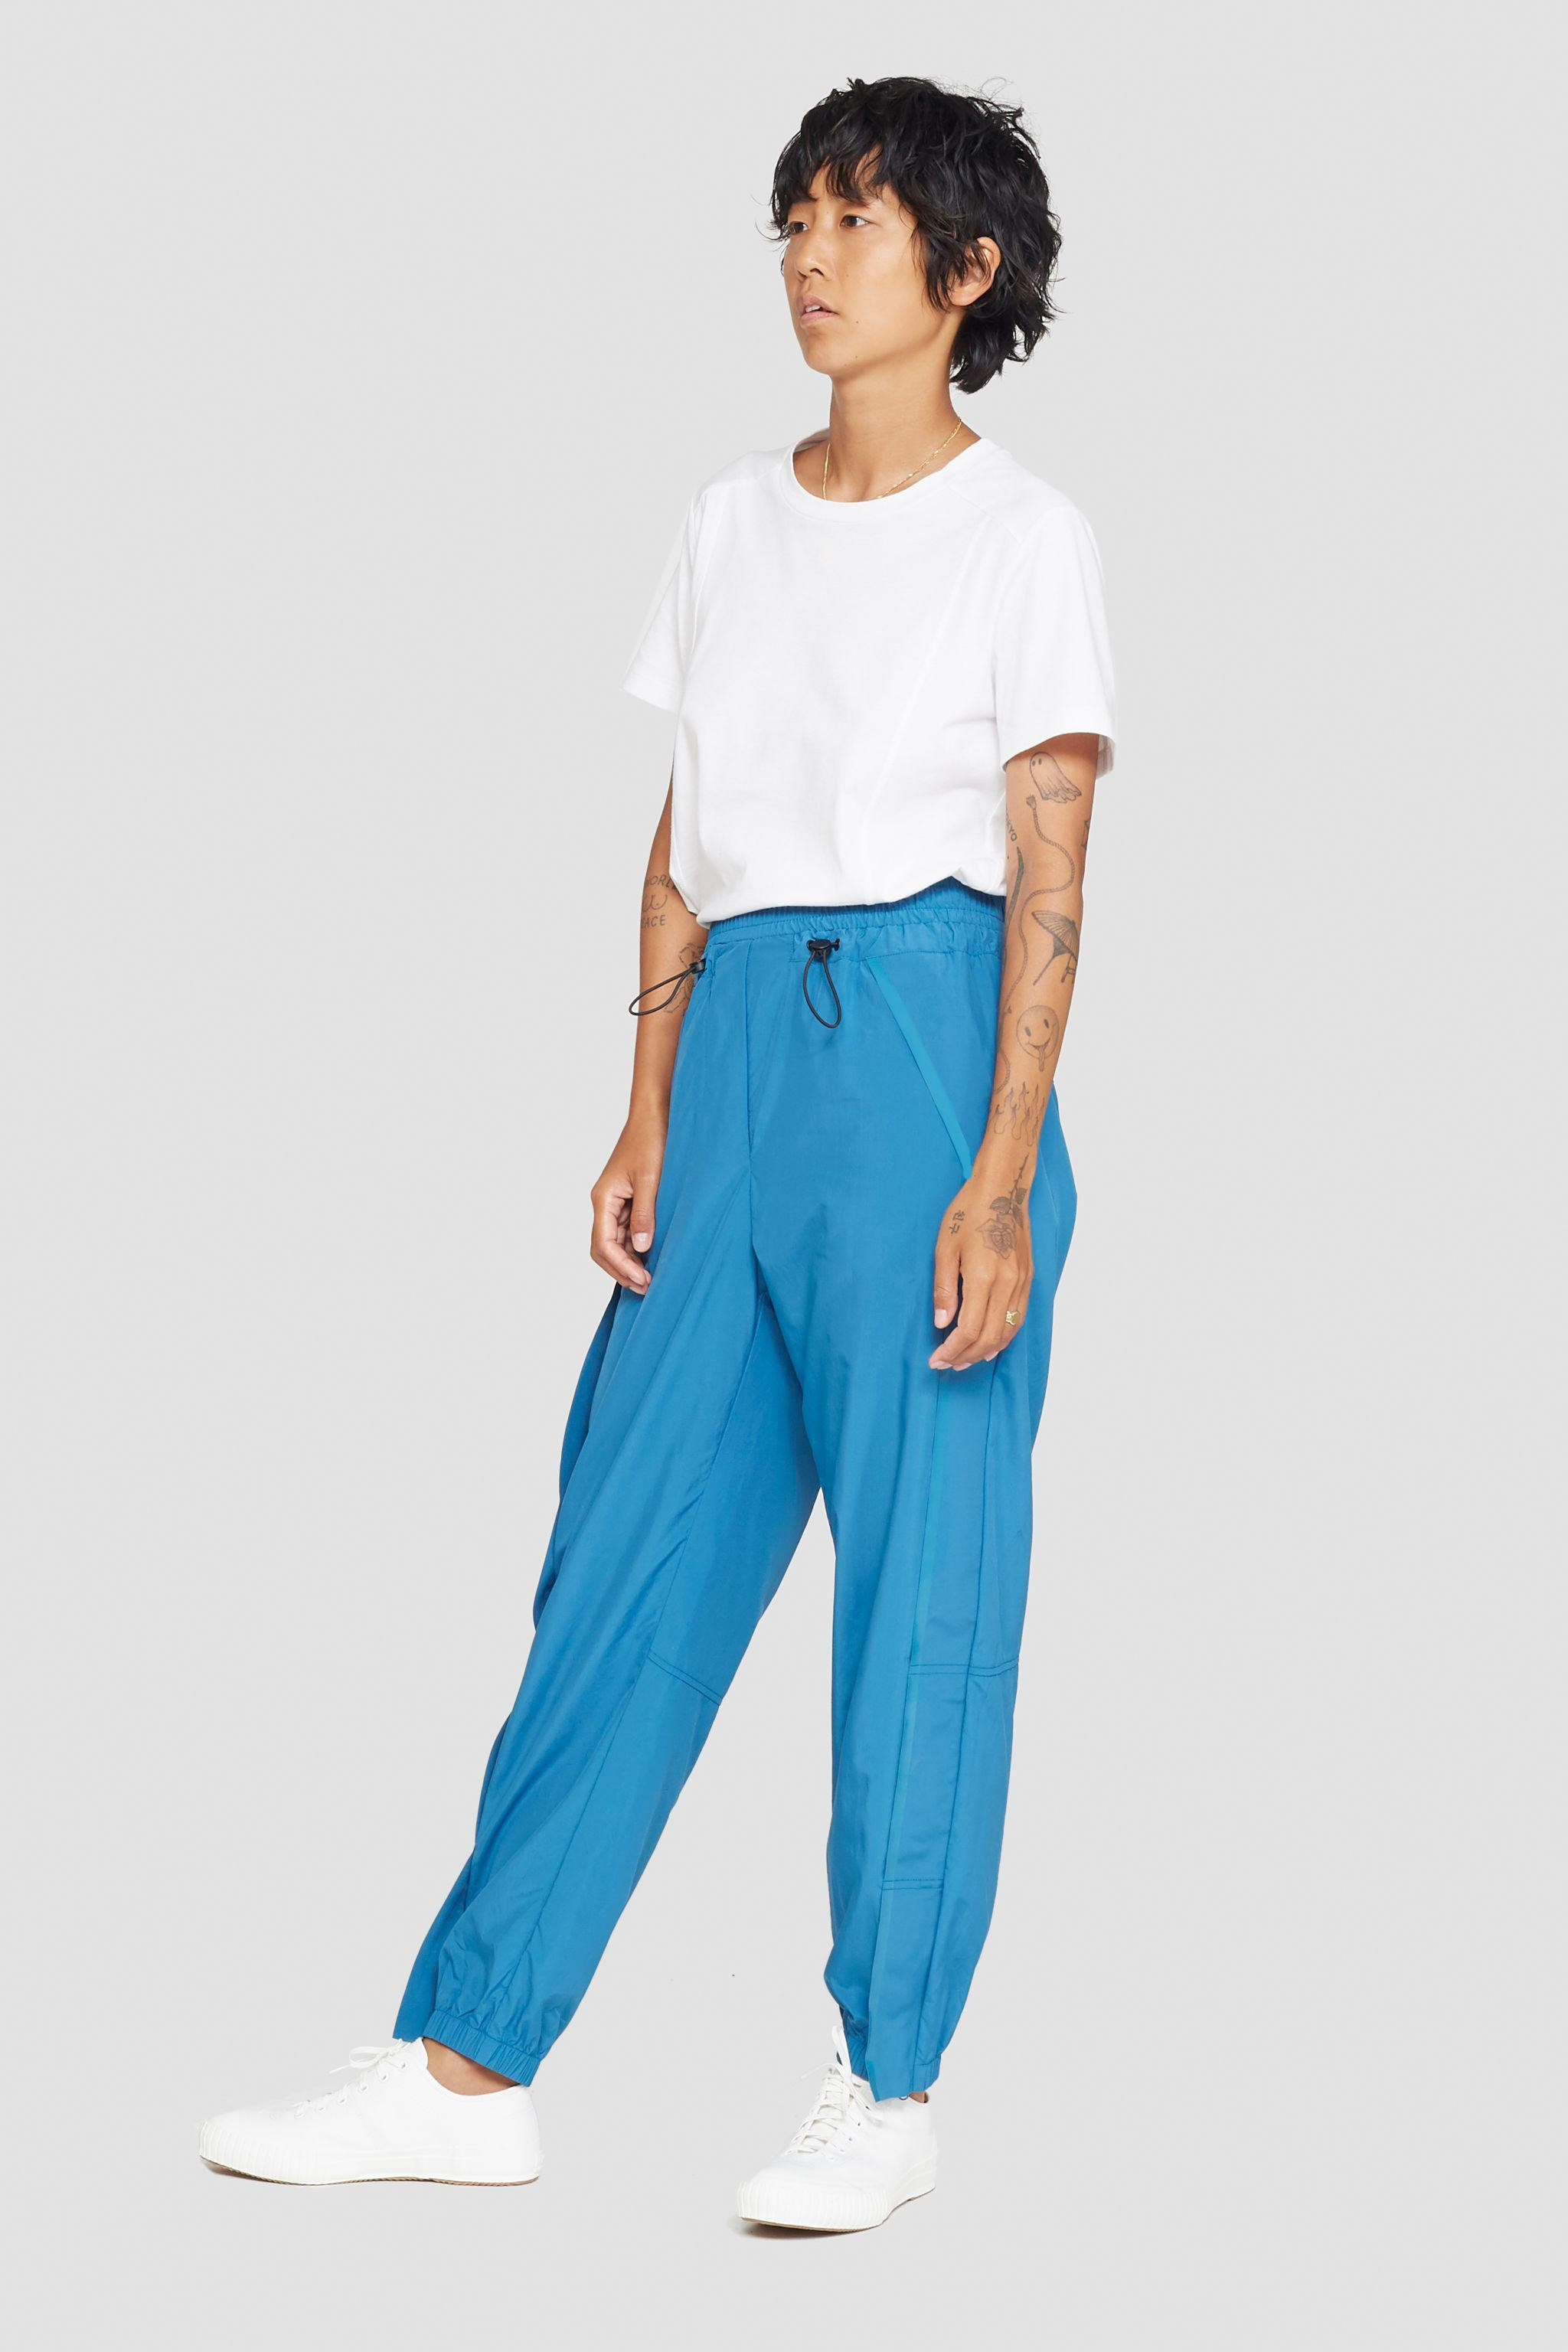 The Track-Less Pant 1